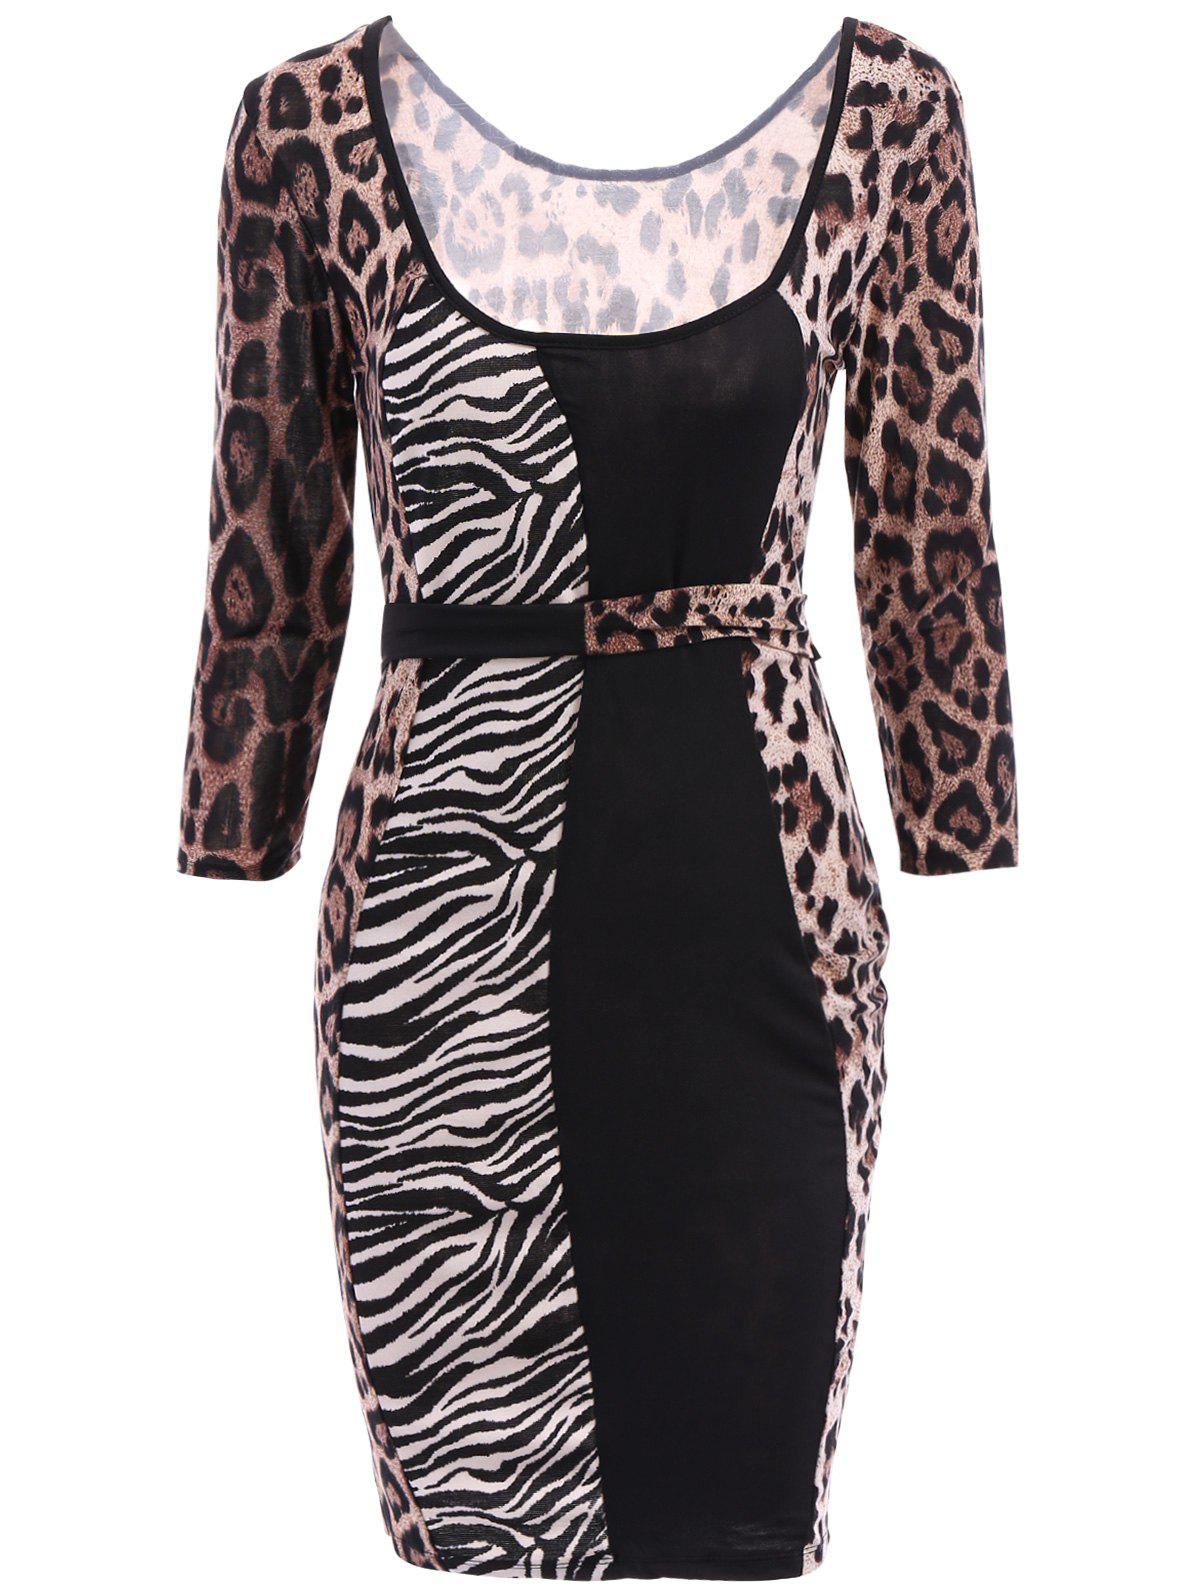 Stylish U-Neck Long Sleeve Slimming Leopard Print Women's Dress - LEOPARD ONE SIZE(FIT SIZE XS TO M)